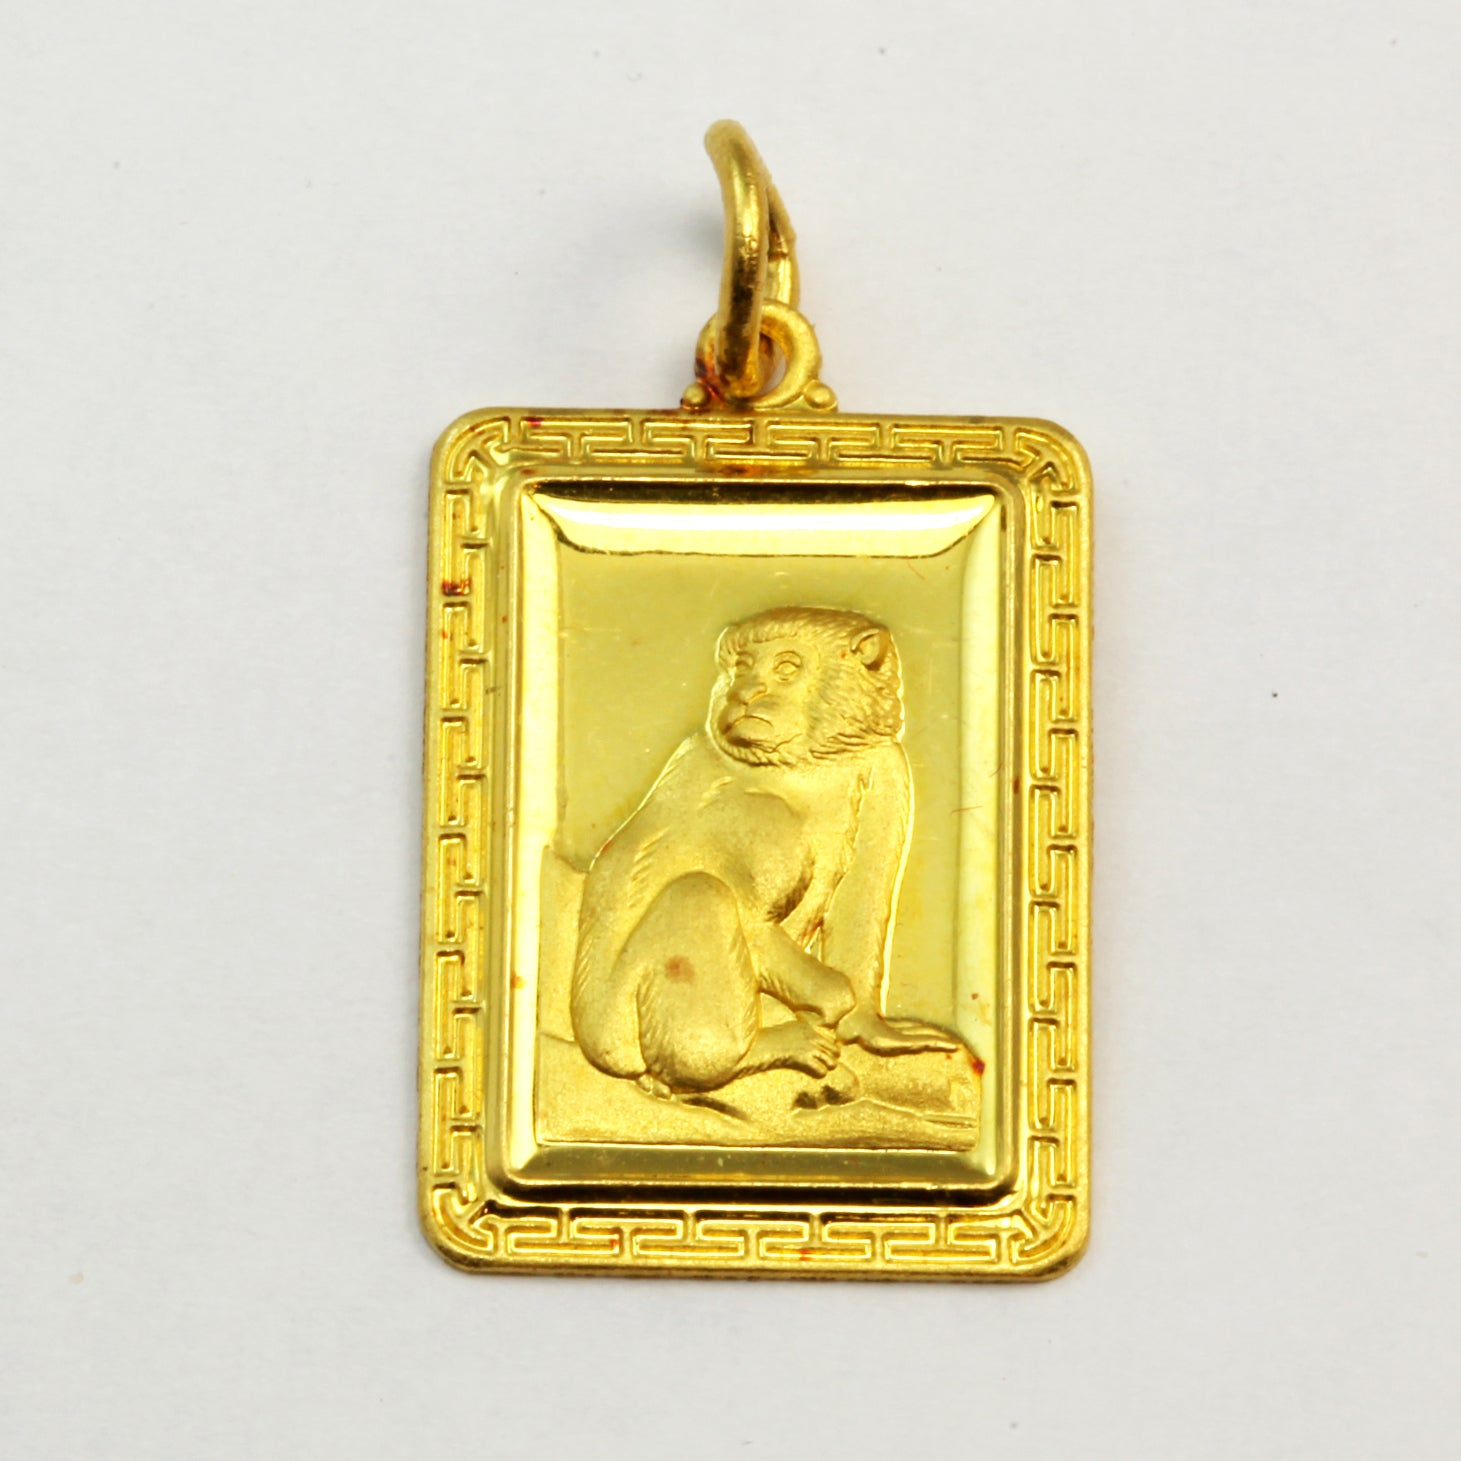 24K Solid Yellow Gold Rectangular Monkey Pendant 6.3 Grams